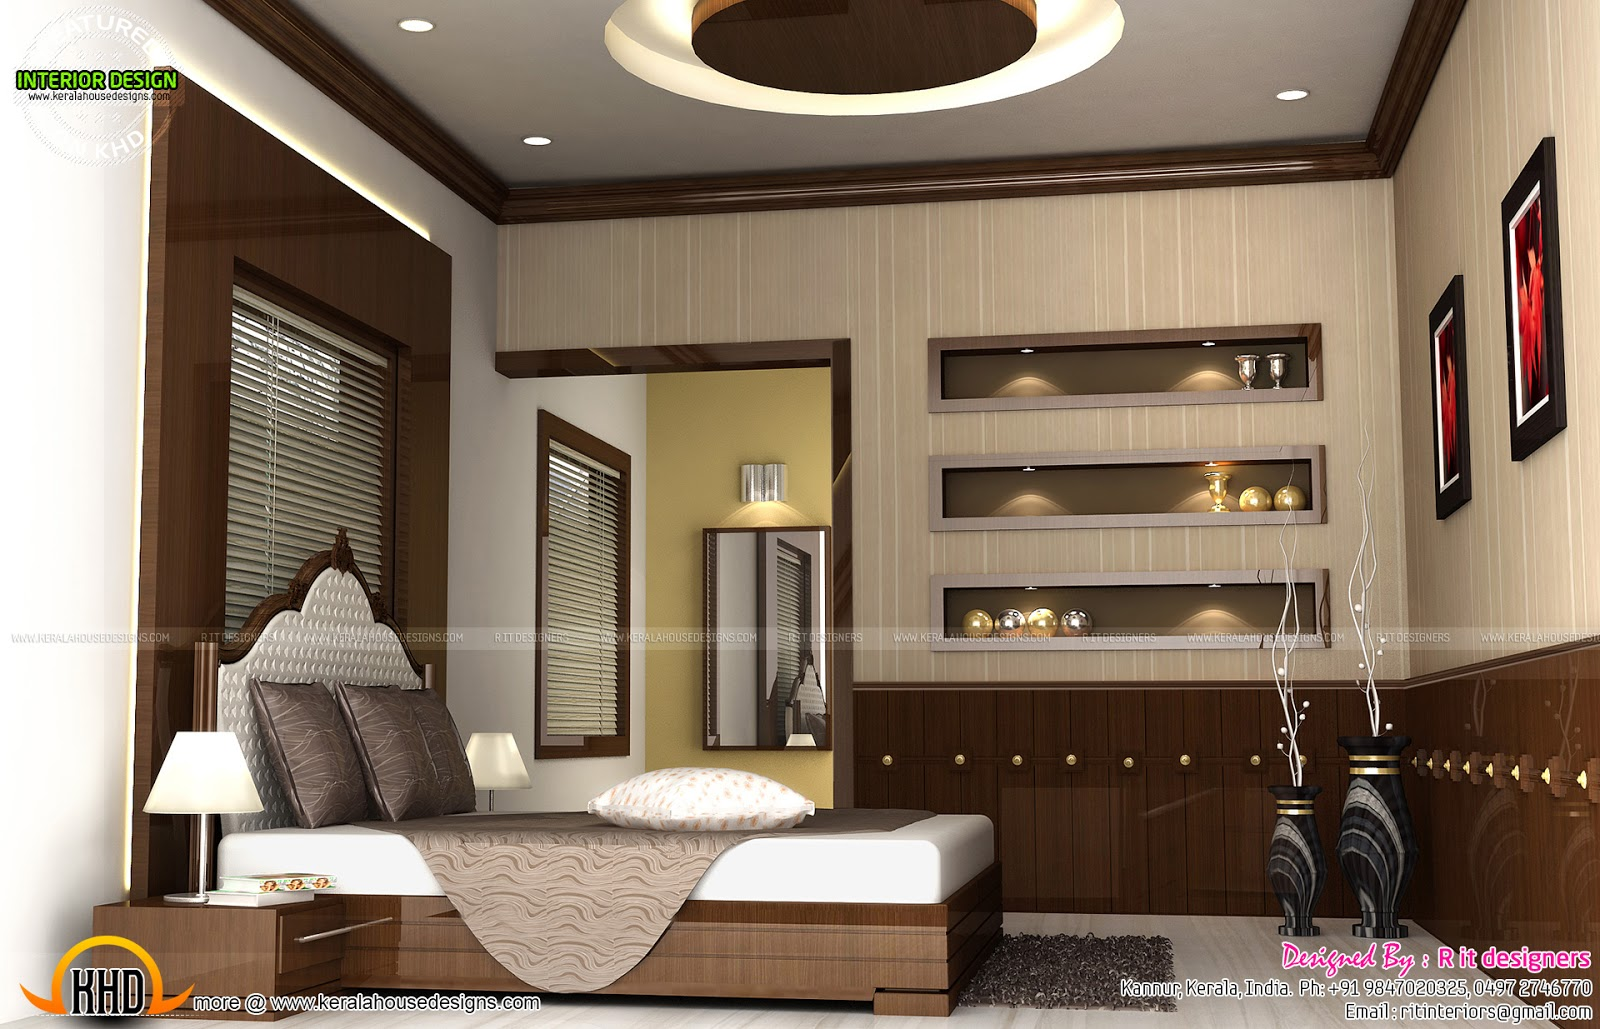 Interior Decorations Home Budget Kerala Home Designers Low Budget